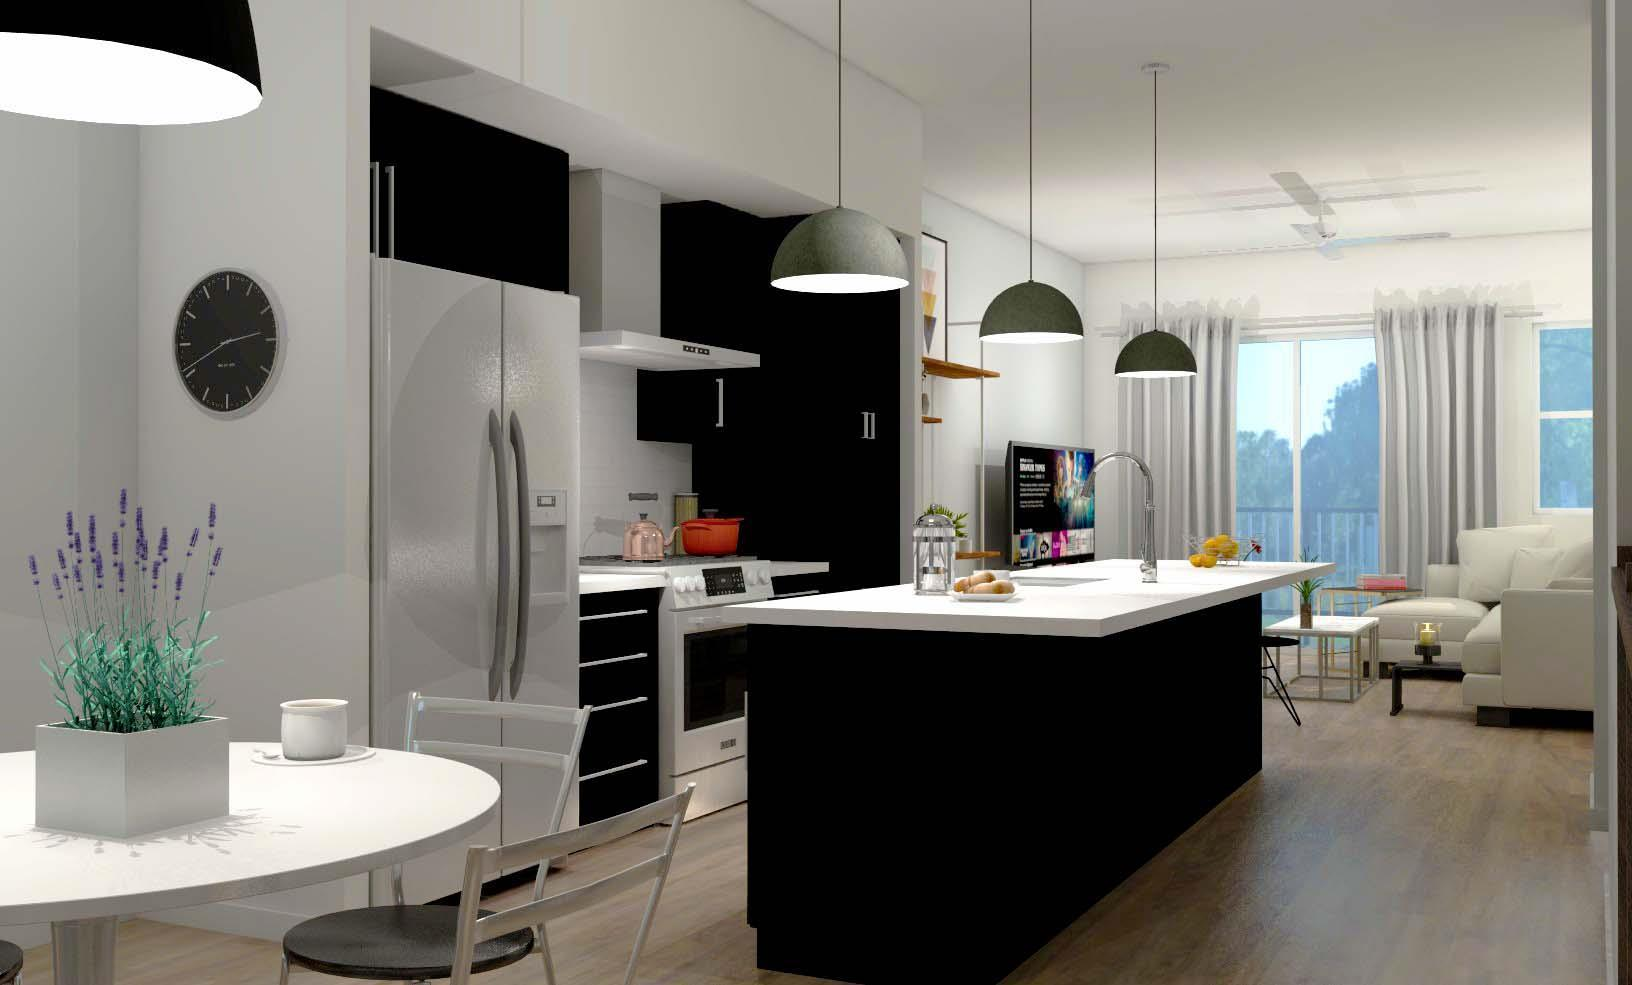 Kitchen featured in the Residence One By Next Generation Capital  in Sacramento, CA